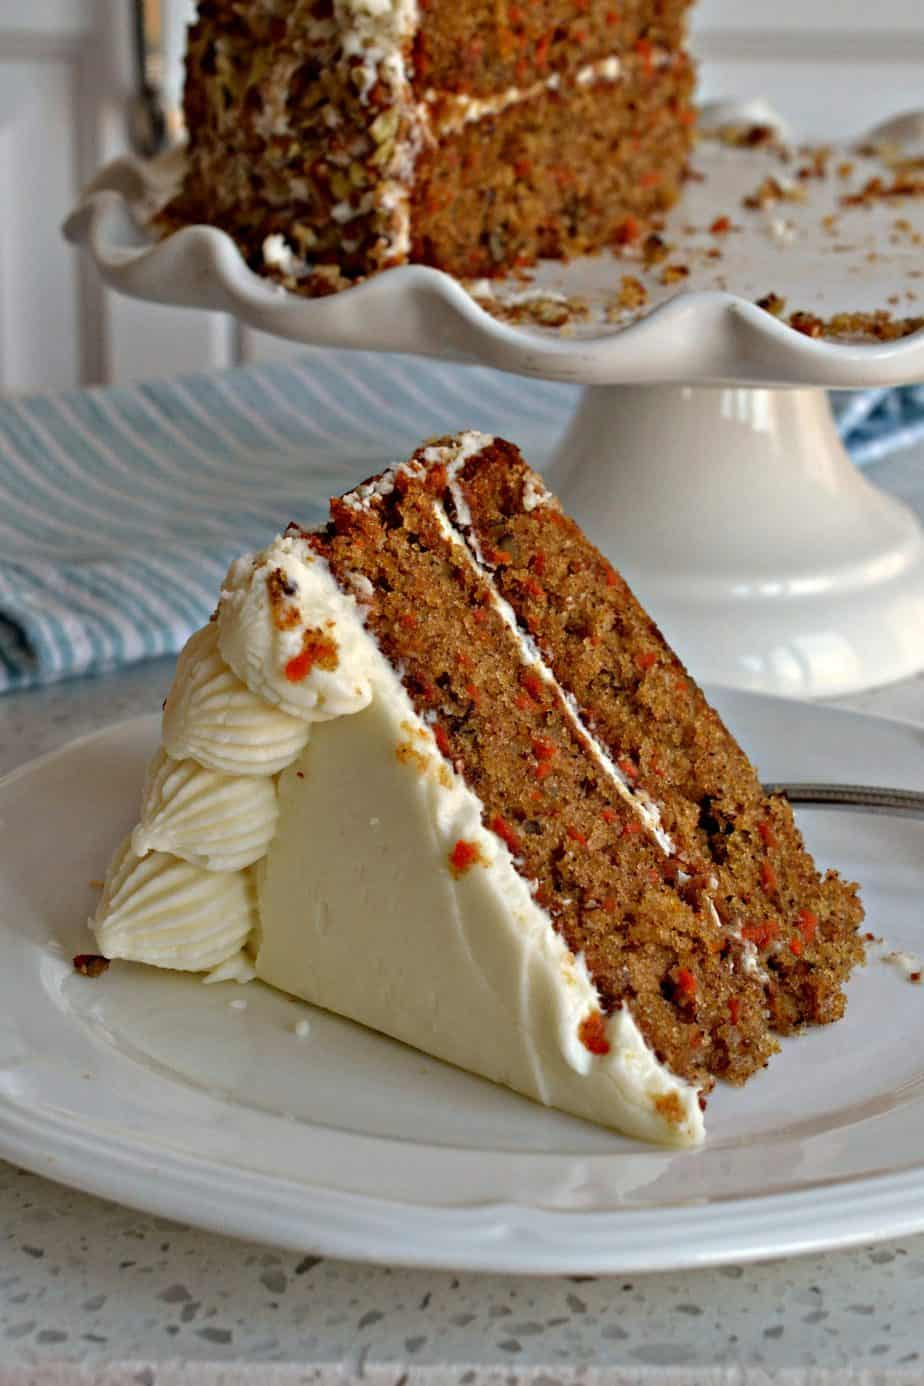 This holiday worthy Carrot Cake is a moist delectable two layer cake with classic cream cheese frosting.